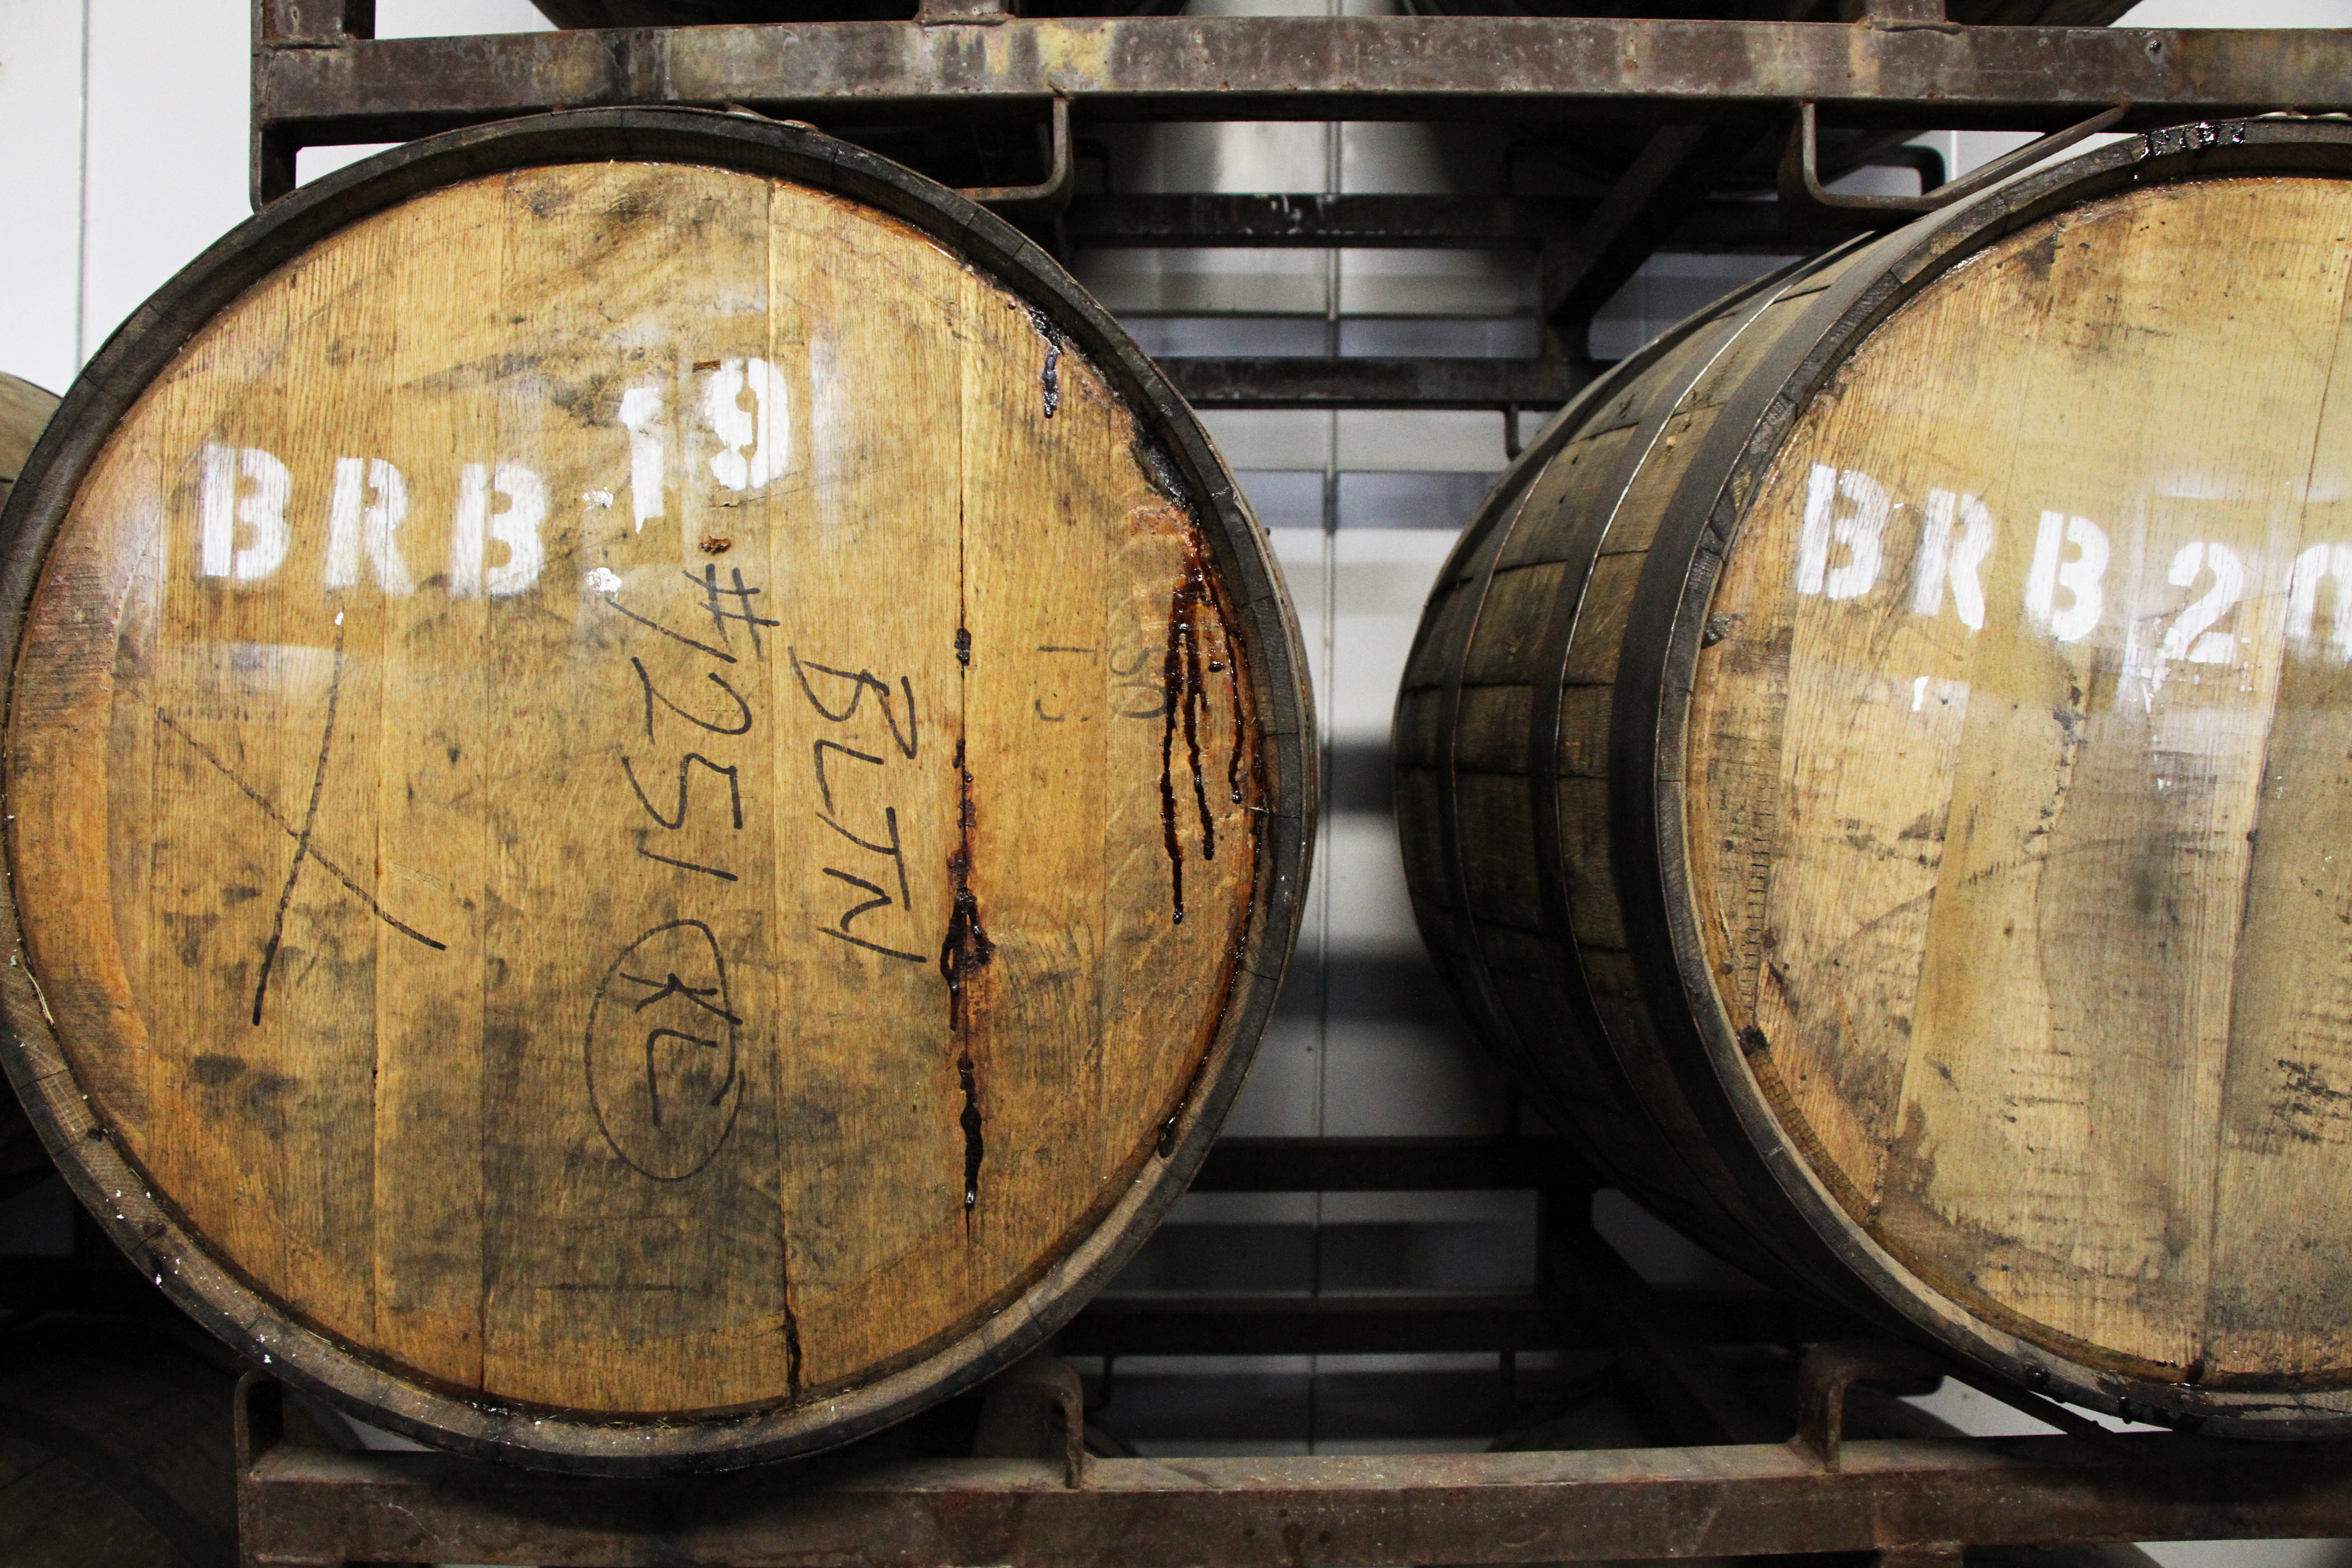 Rhinegeist has rows of sour beers aging in former bourbon barrels in the basement of the brewery.